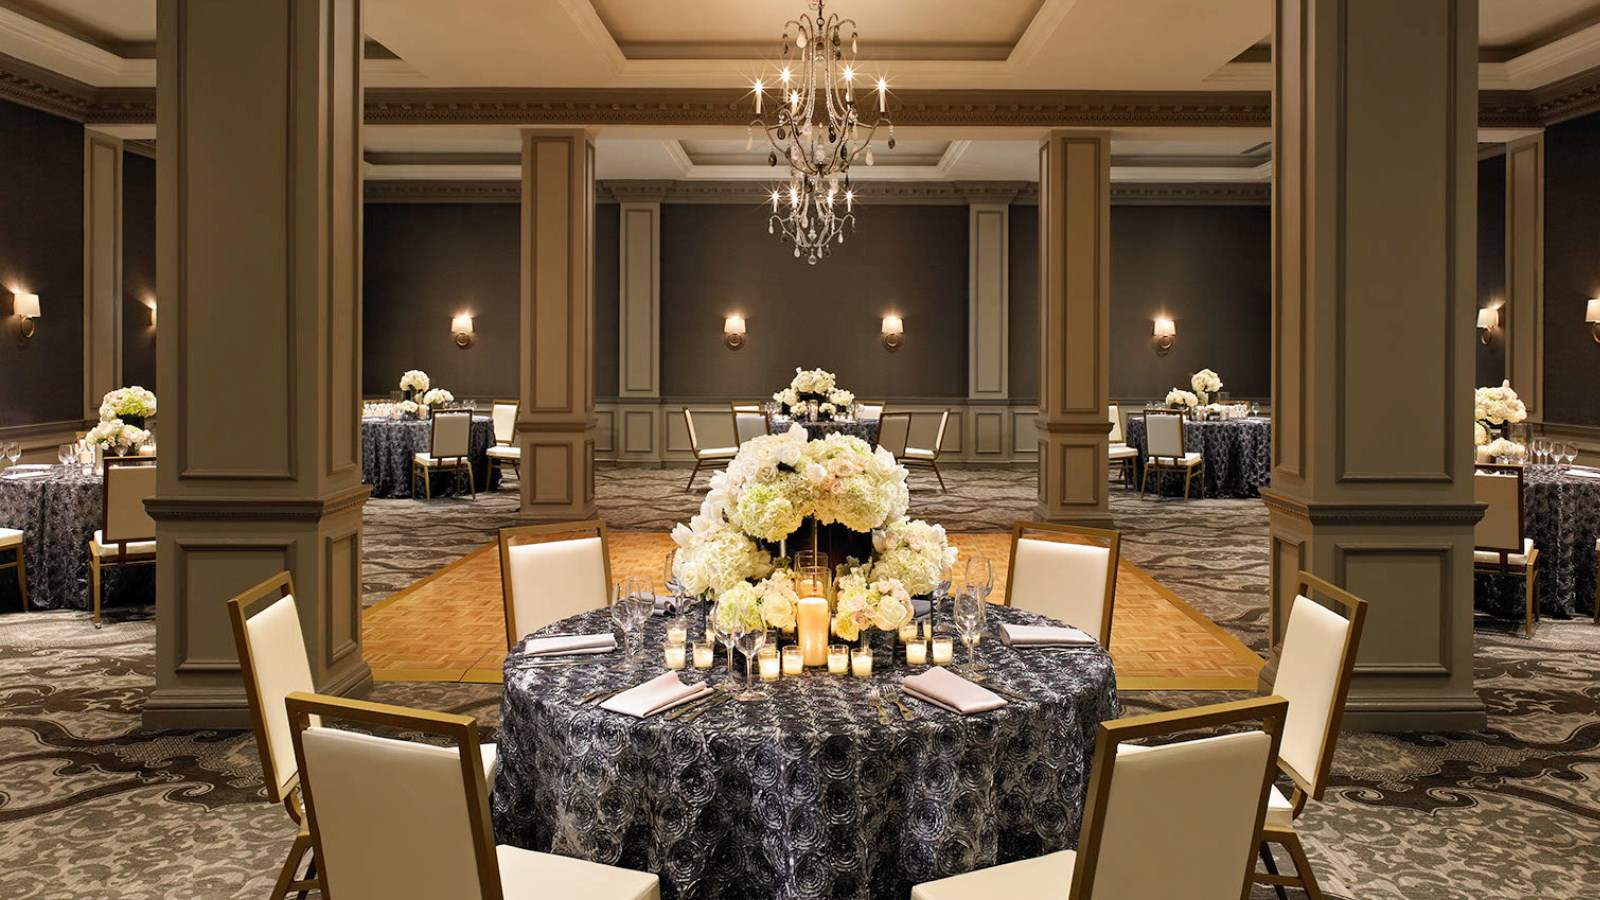 San Antonio Wedding Venues The St Anthony Hotel A